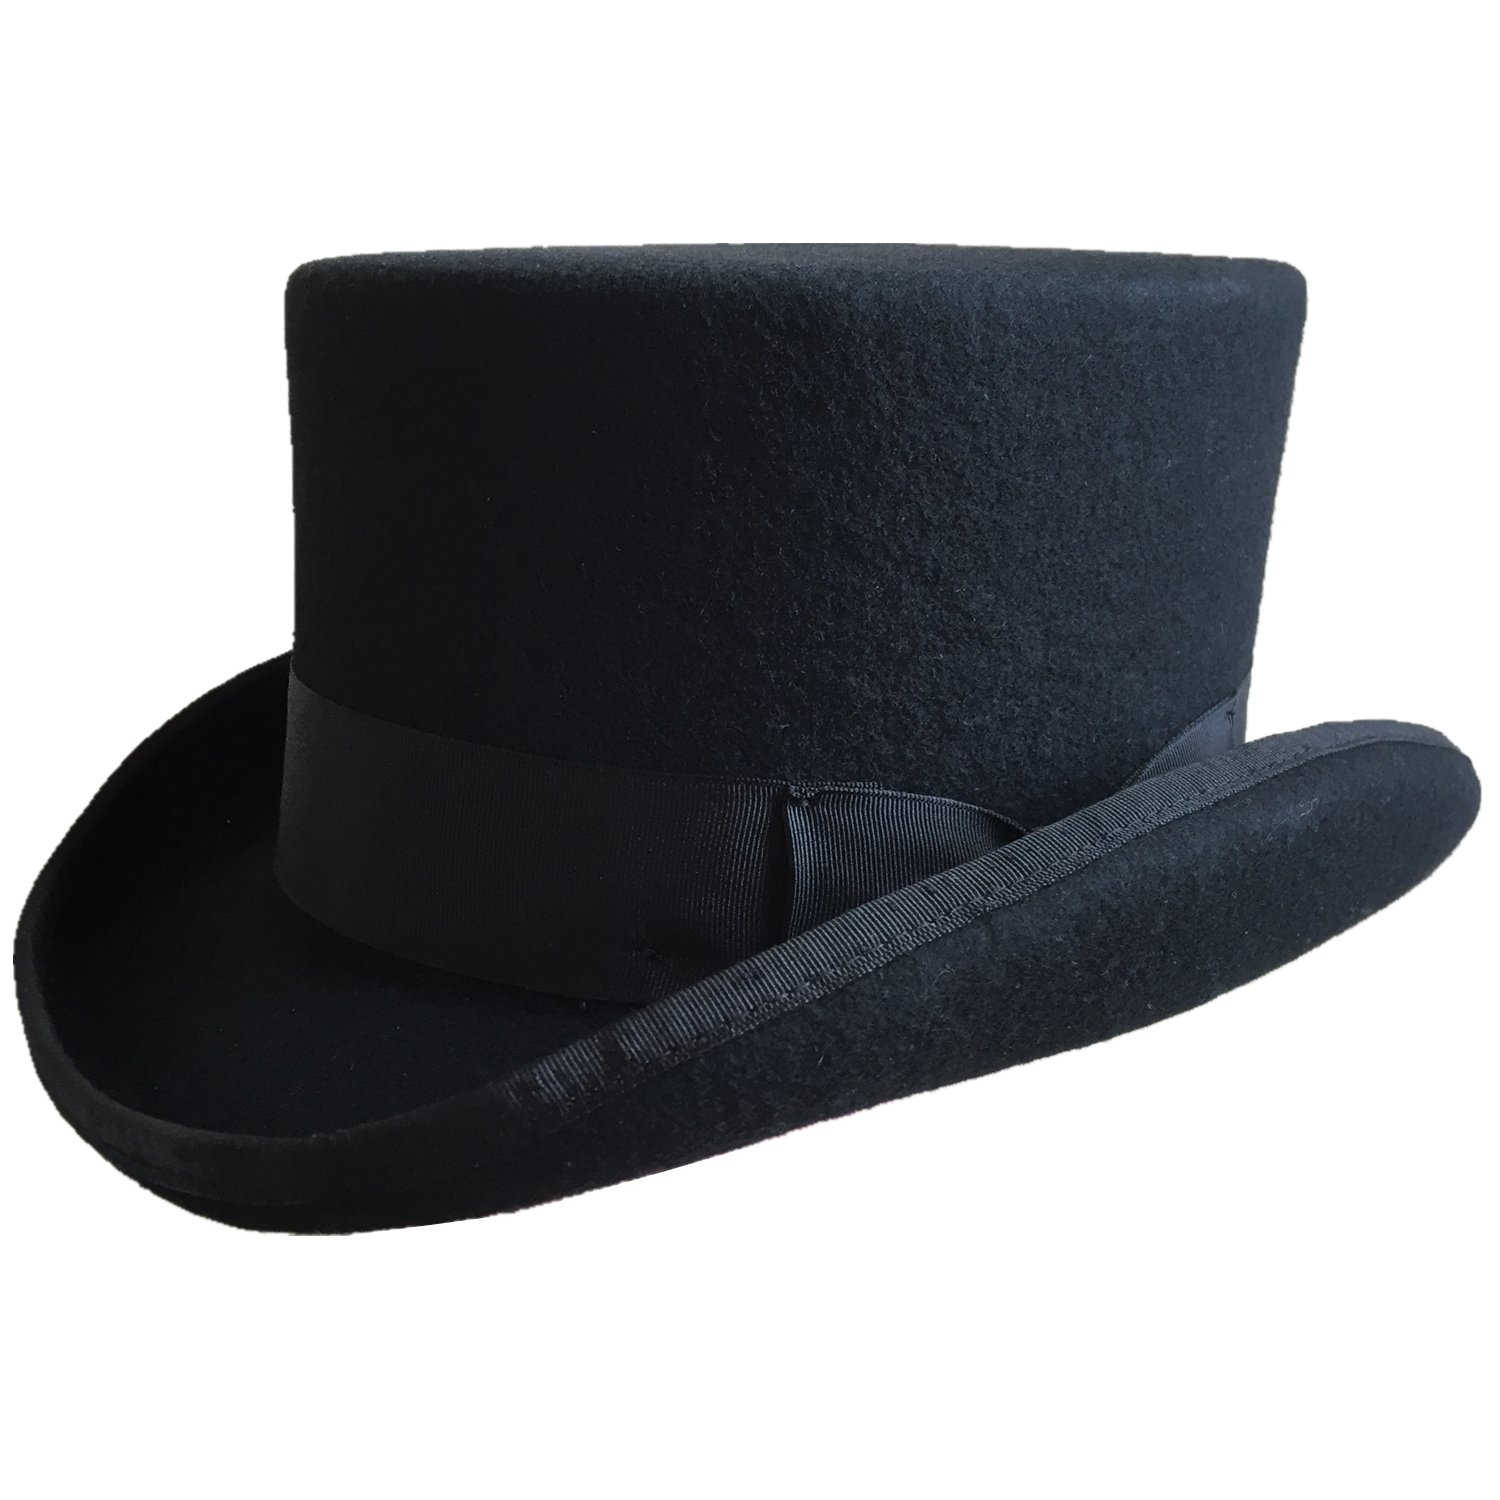 c6ad7cb8f36 Amazon.com  Black Wool Felt Low Short Top Hat Victorian Mad Hatter Topper  Hats Women Men  Clothing